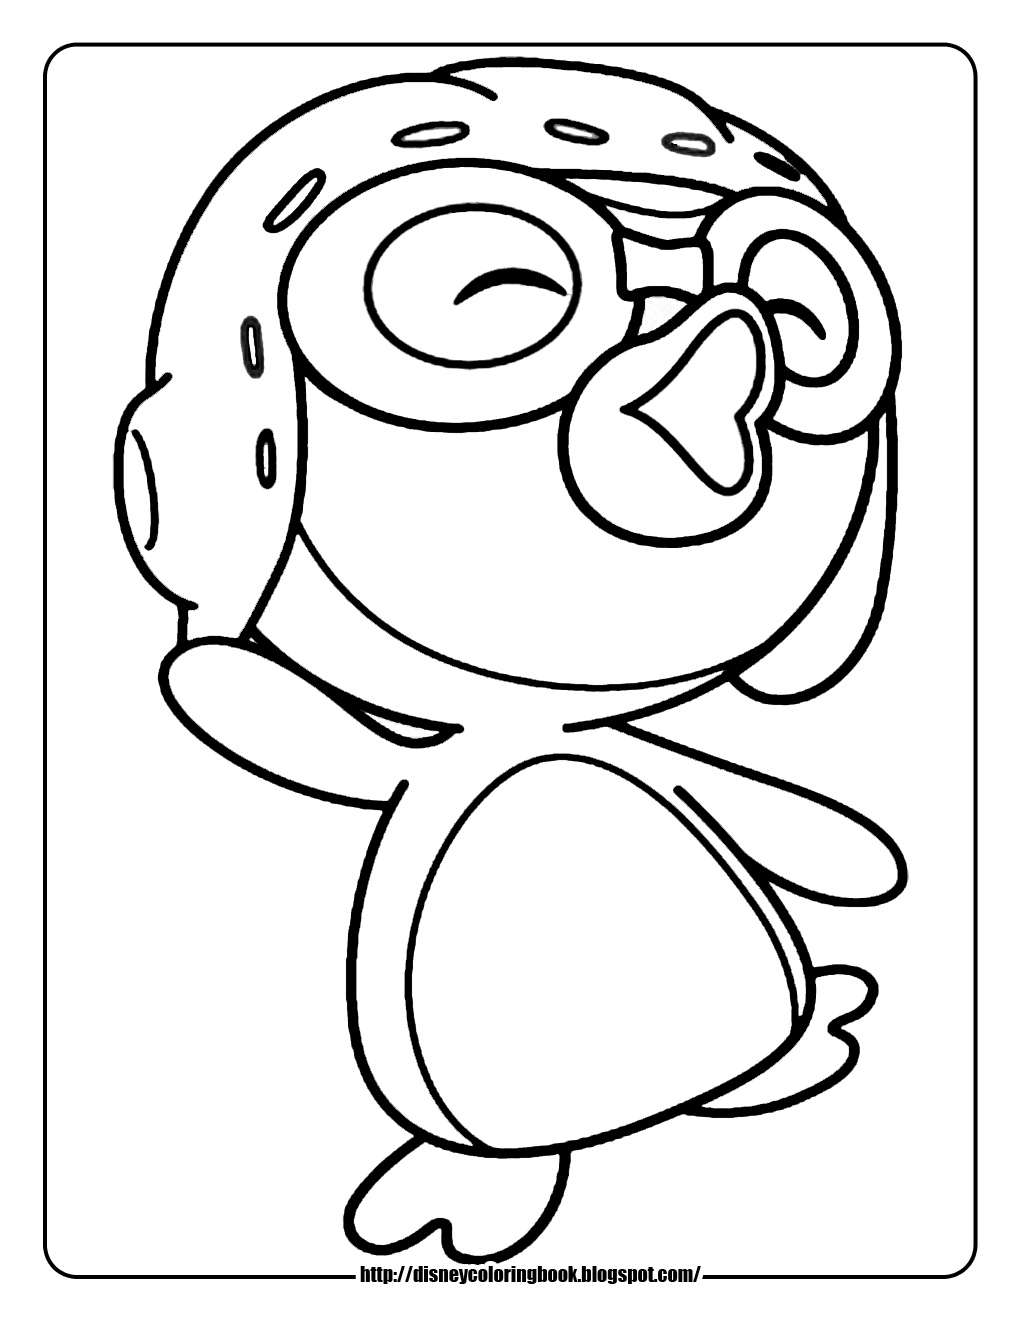 penguins coloring pages printable - photo#6